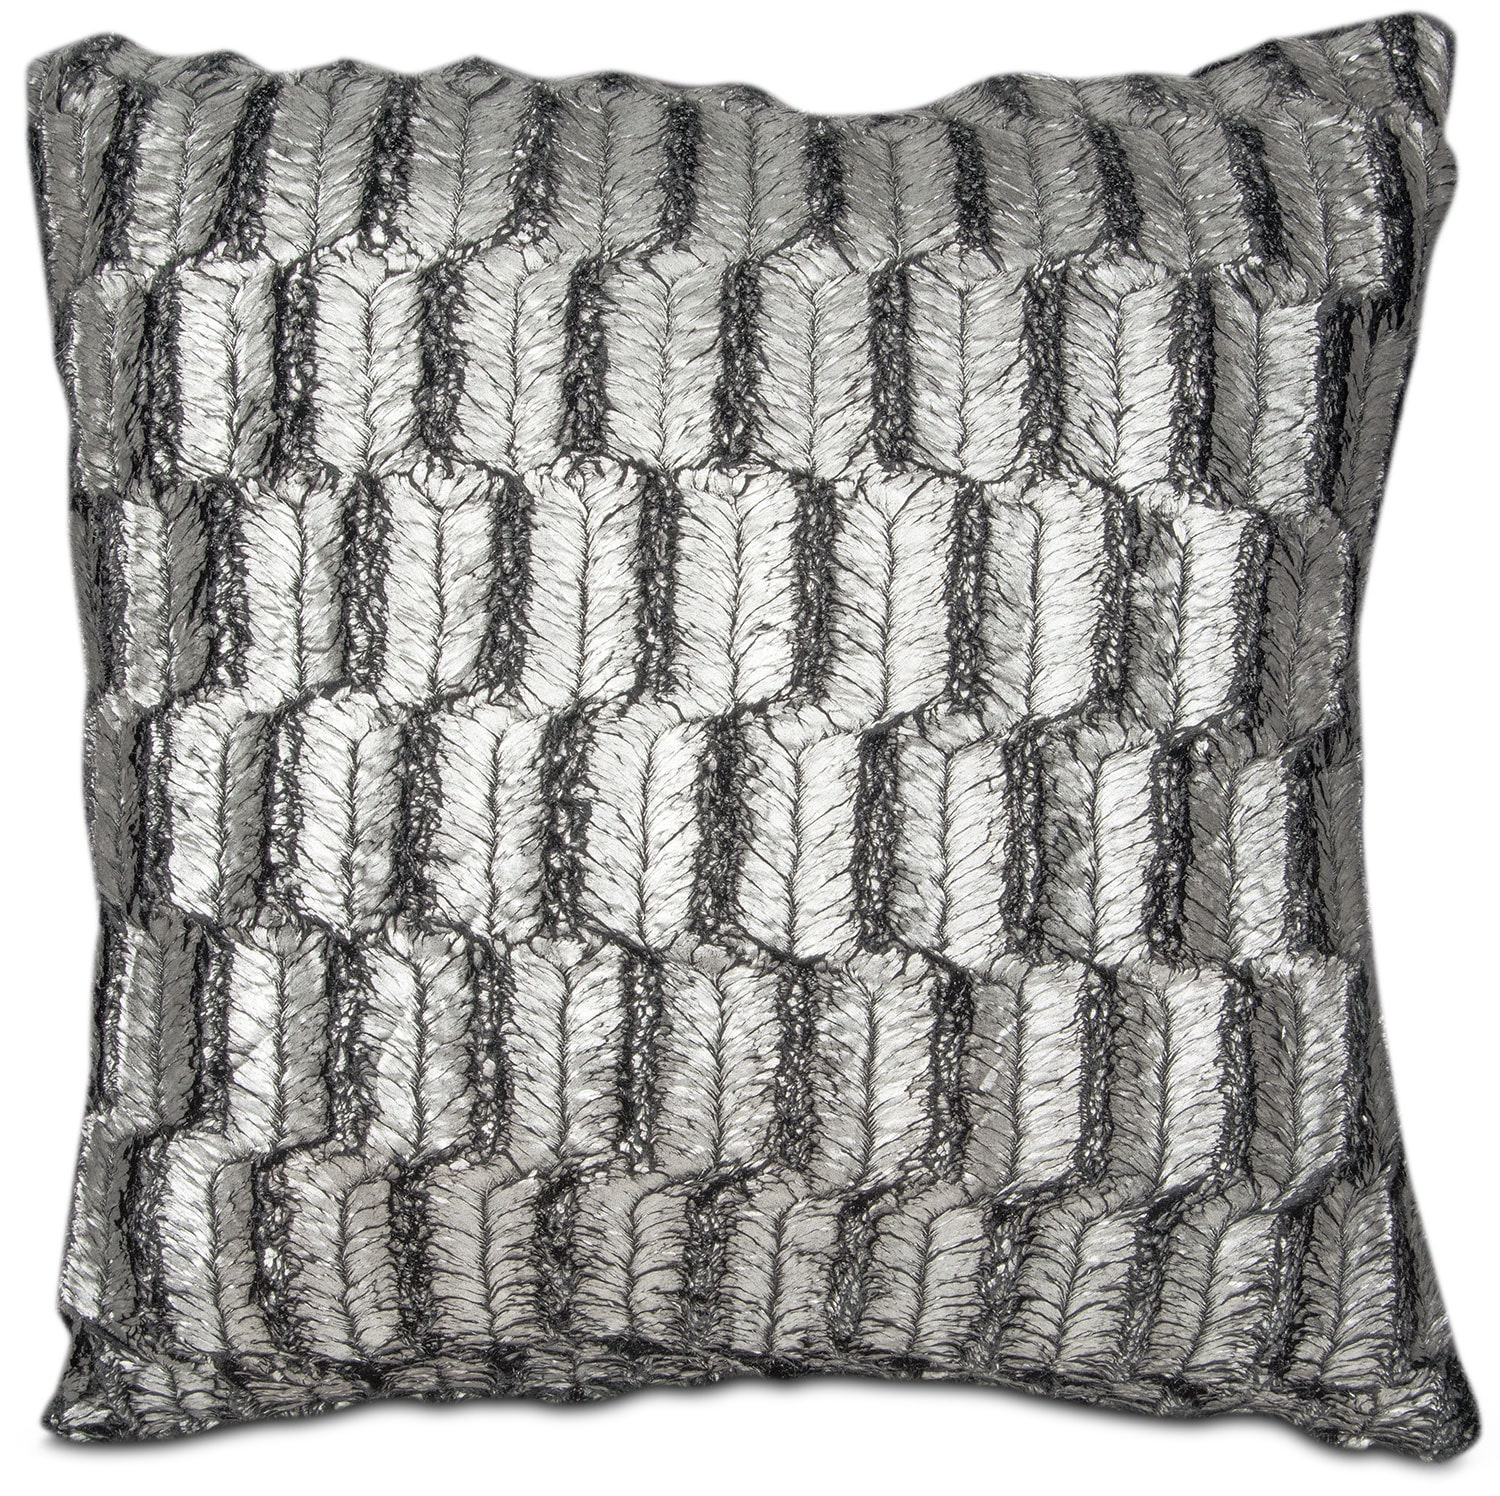 Silver Leaf Decoration Silver Leaf Decorative Pillow American Signature Furniture